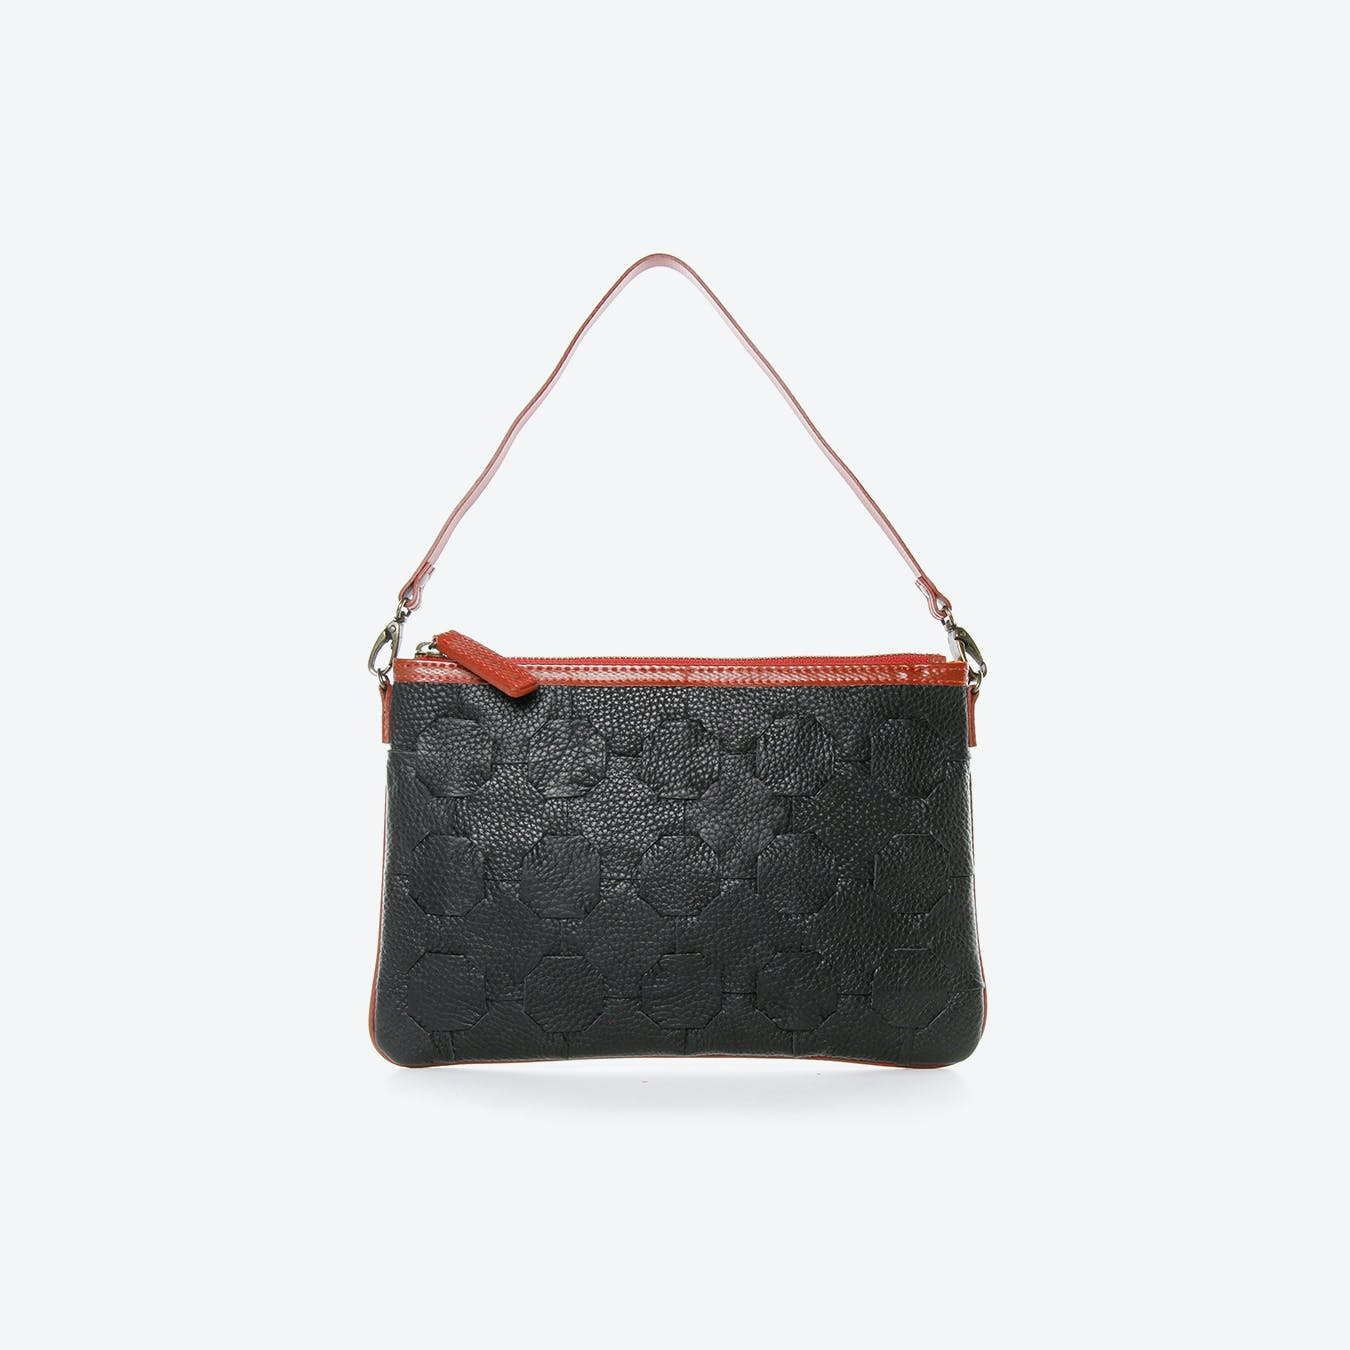 Fire & Hide Clutch Bag in Black Burberry Leather & Red Fire-Hoses